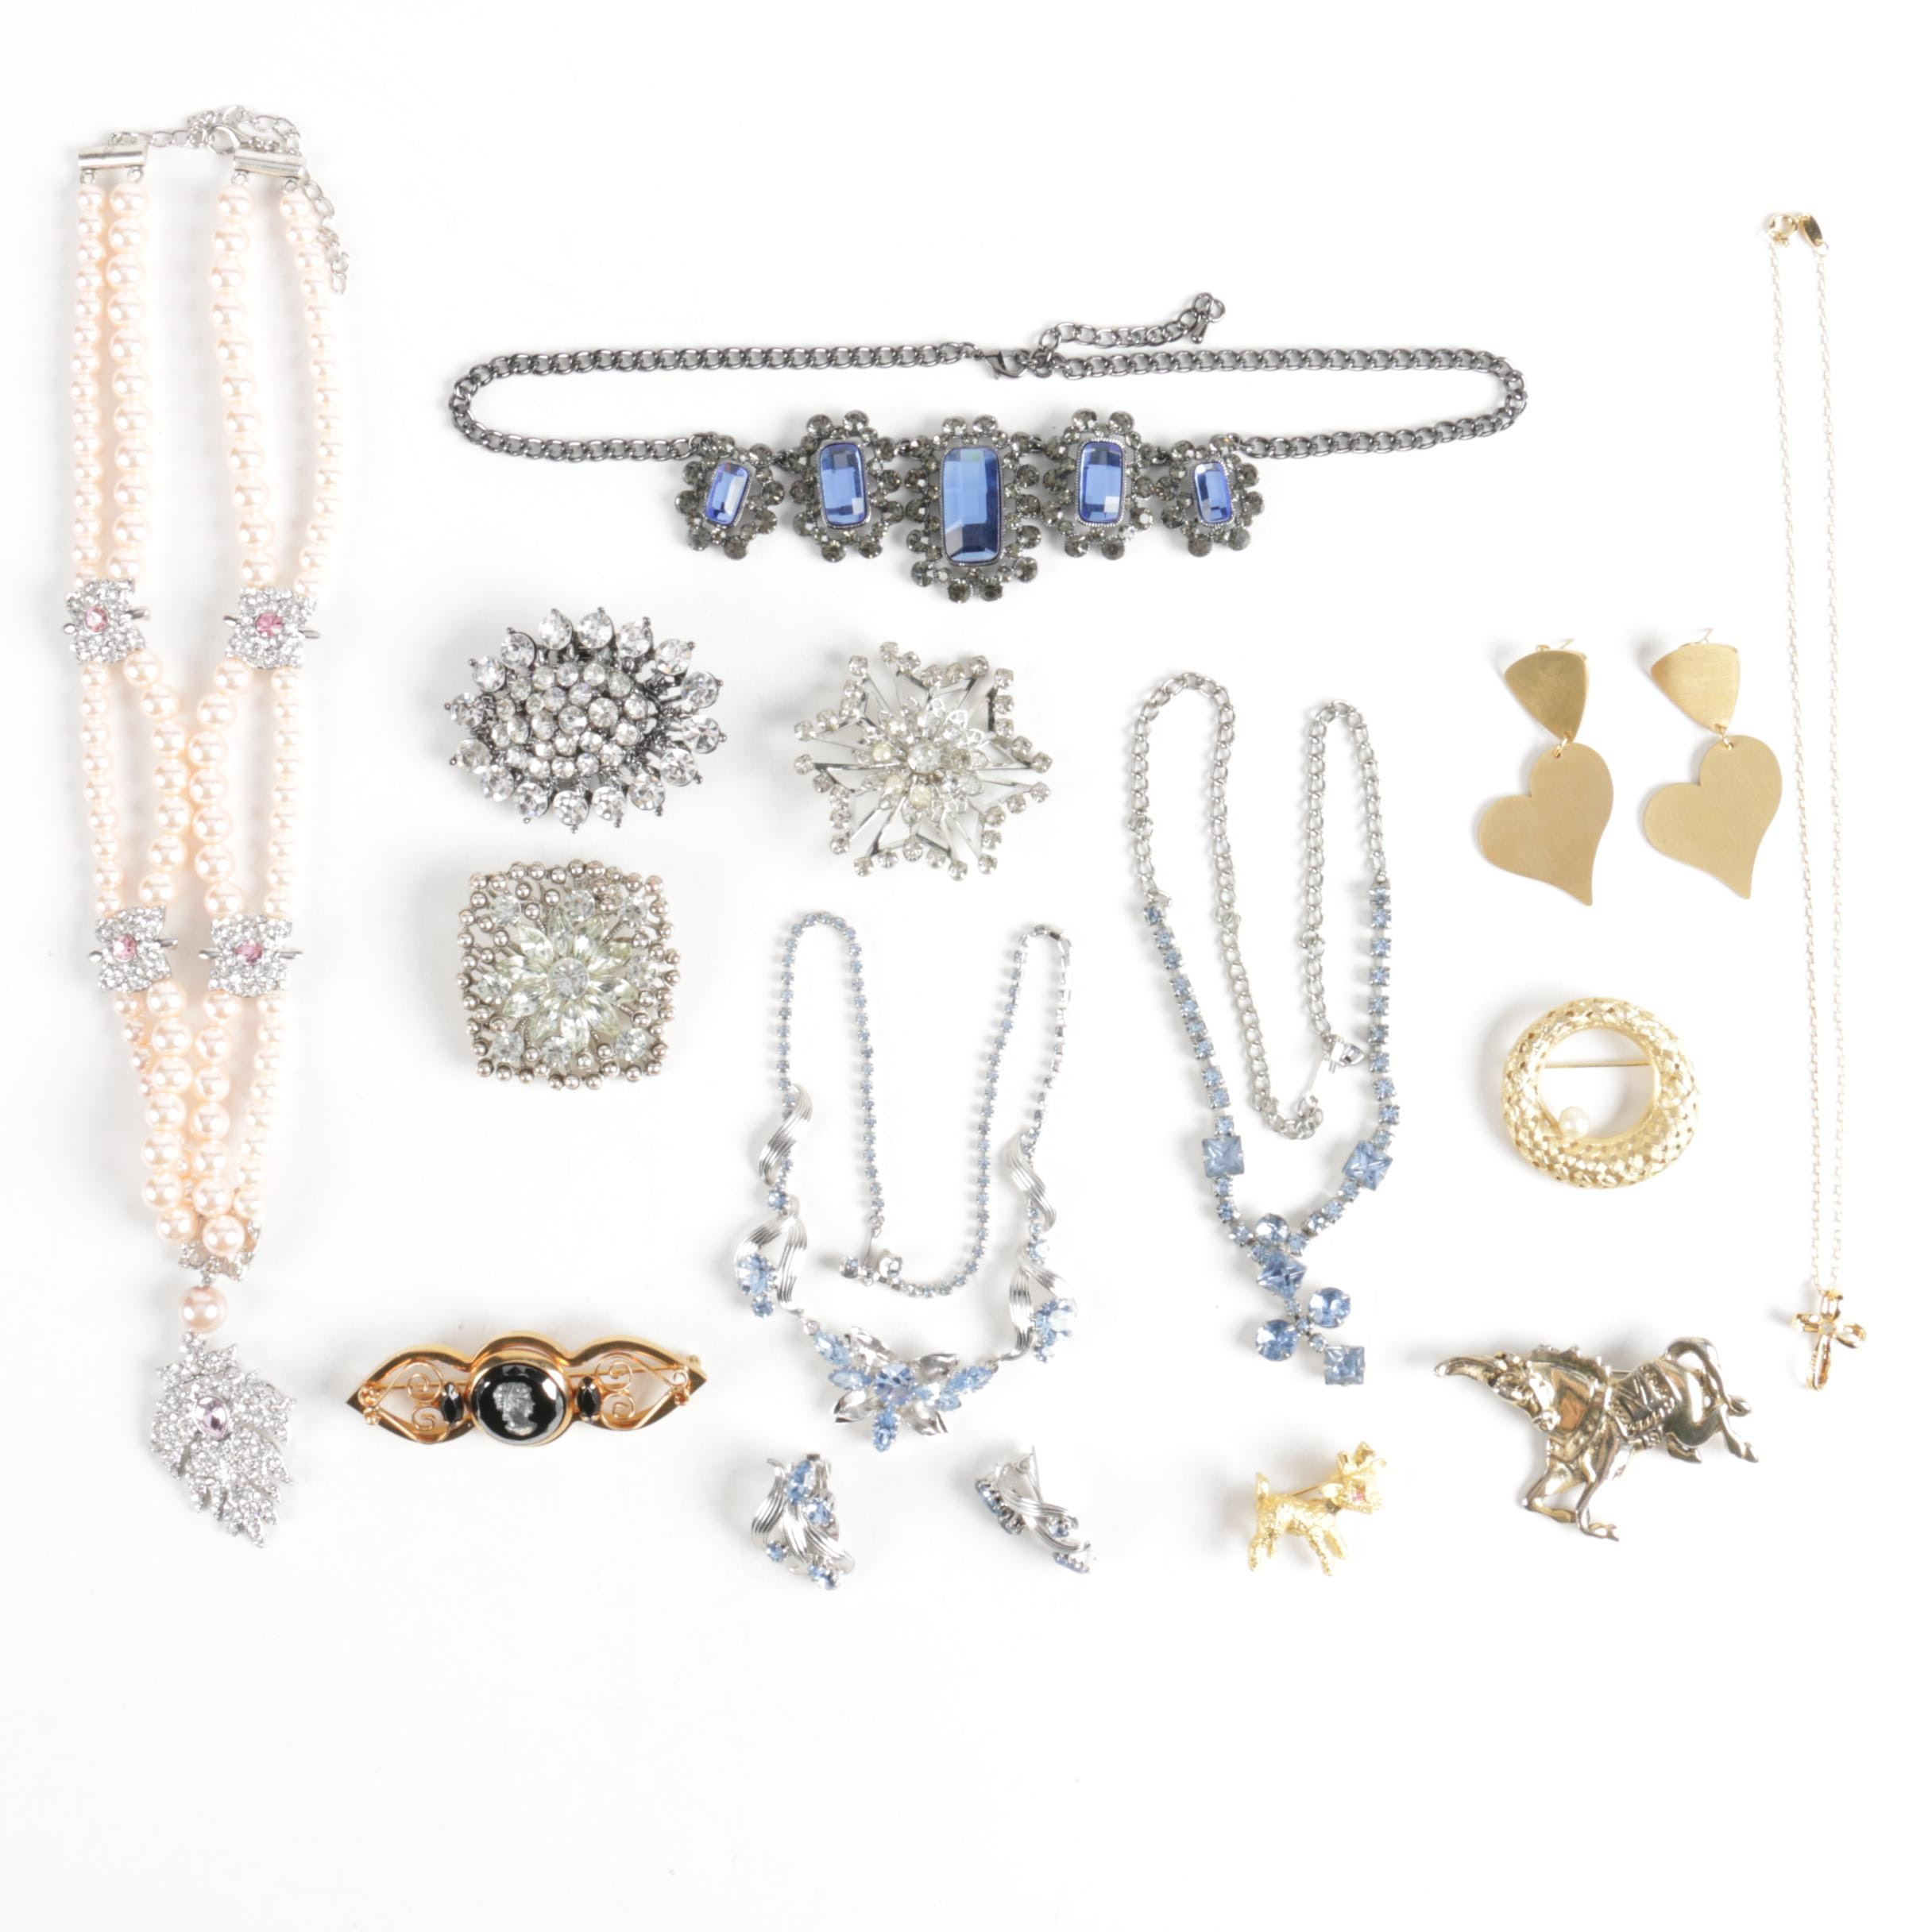 Costume Jewelry Featuring Rhinestones